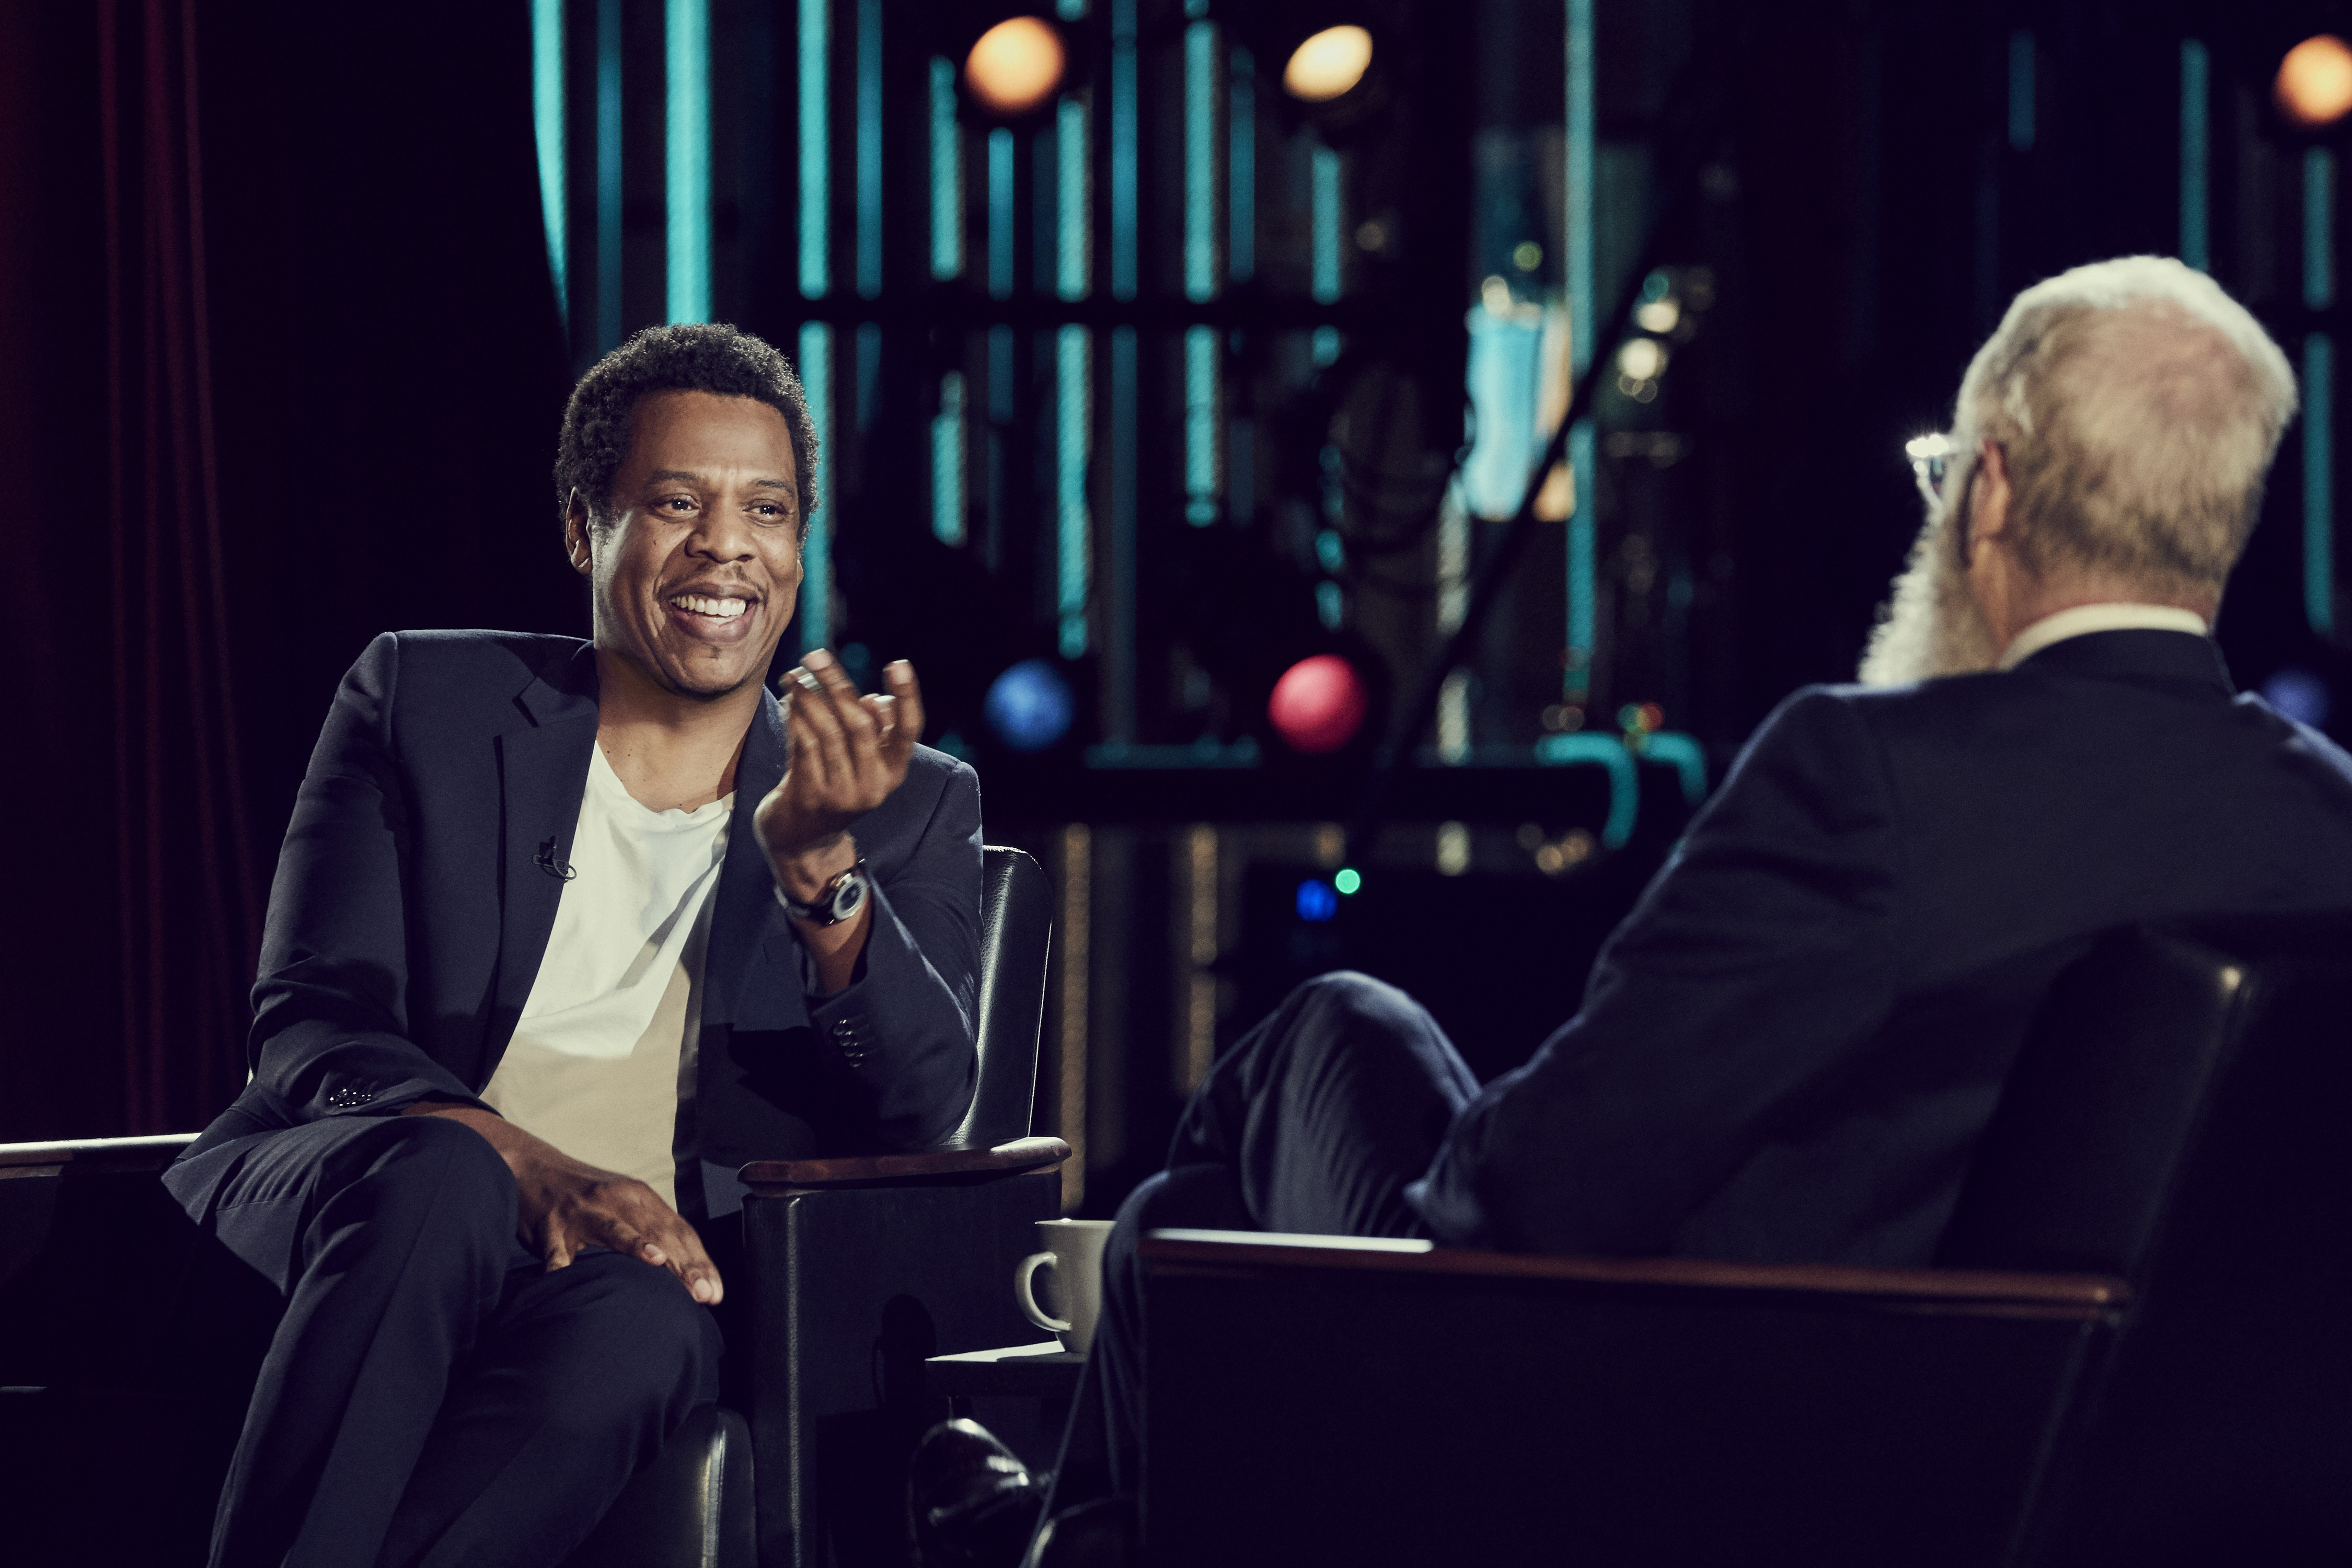 Jay-Z with David Letterman 1